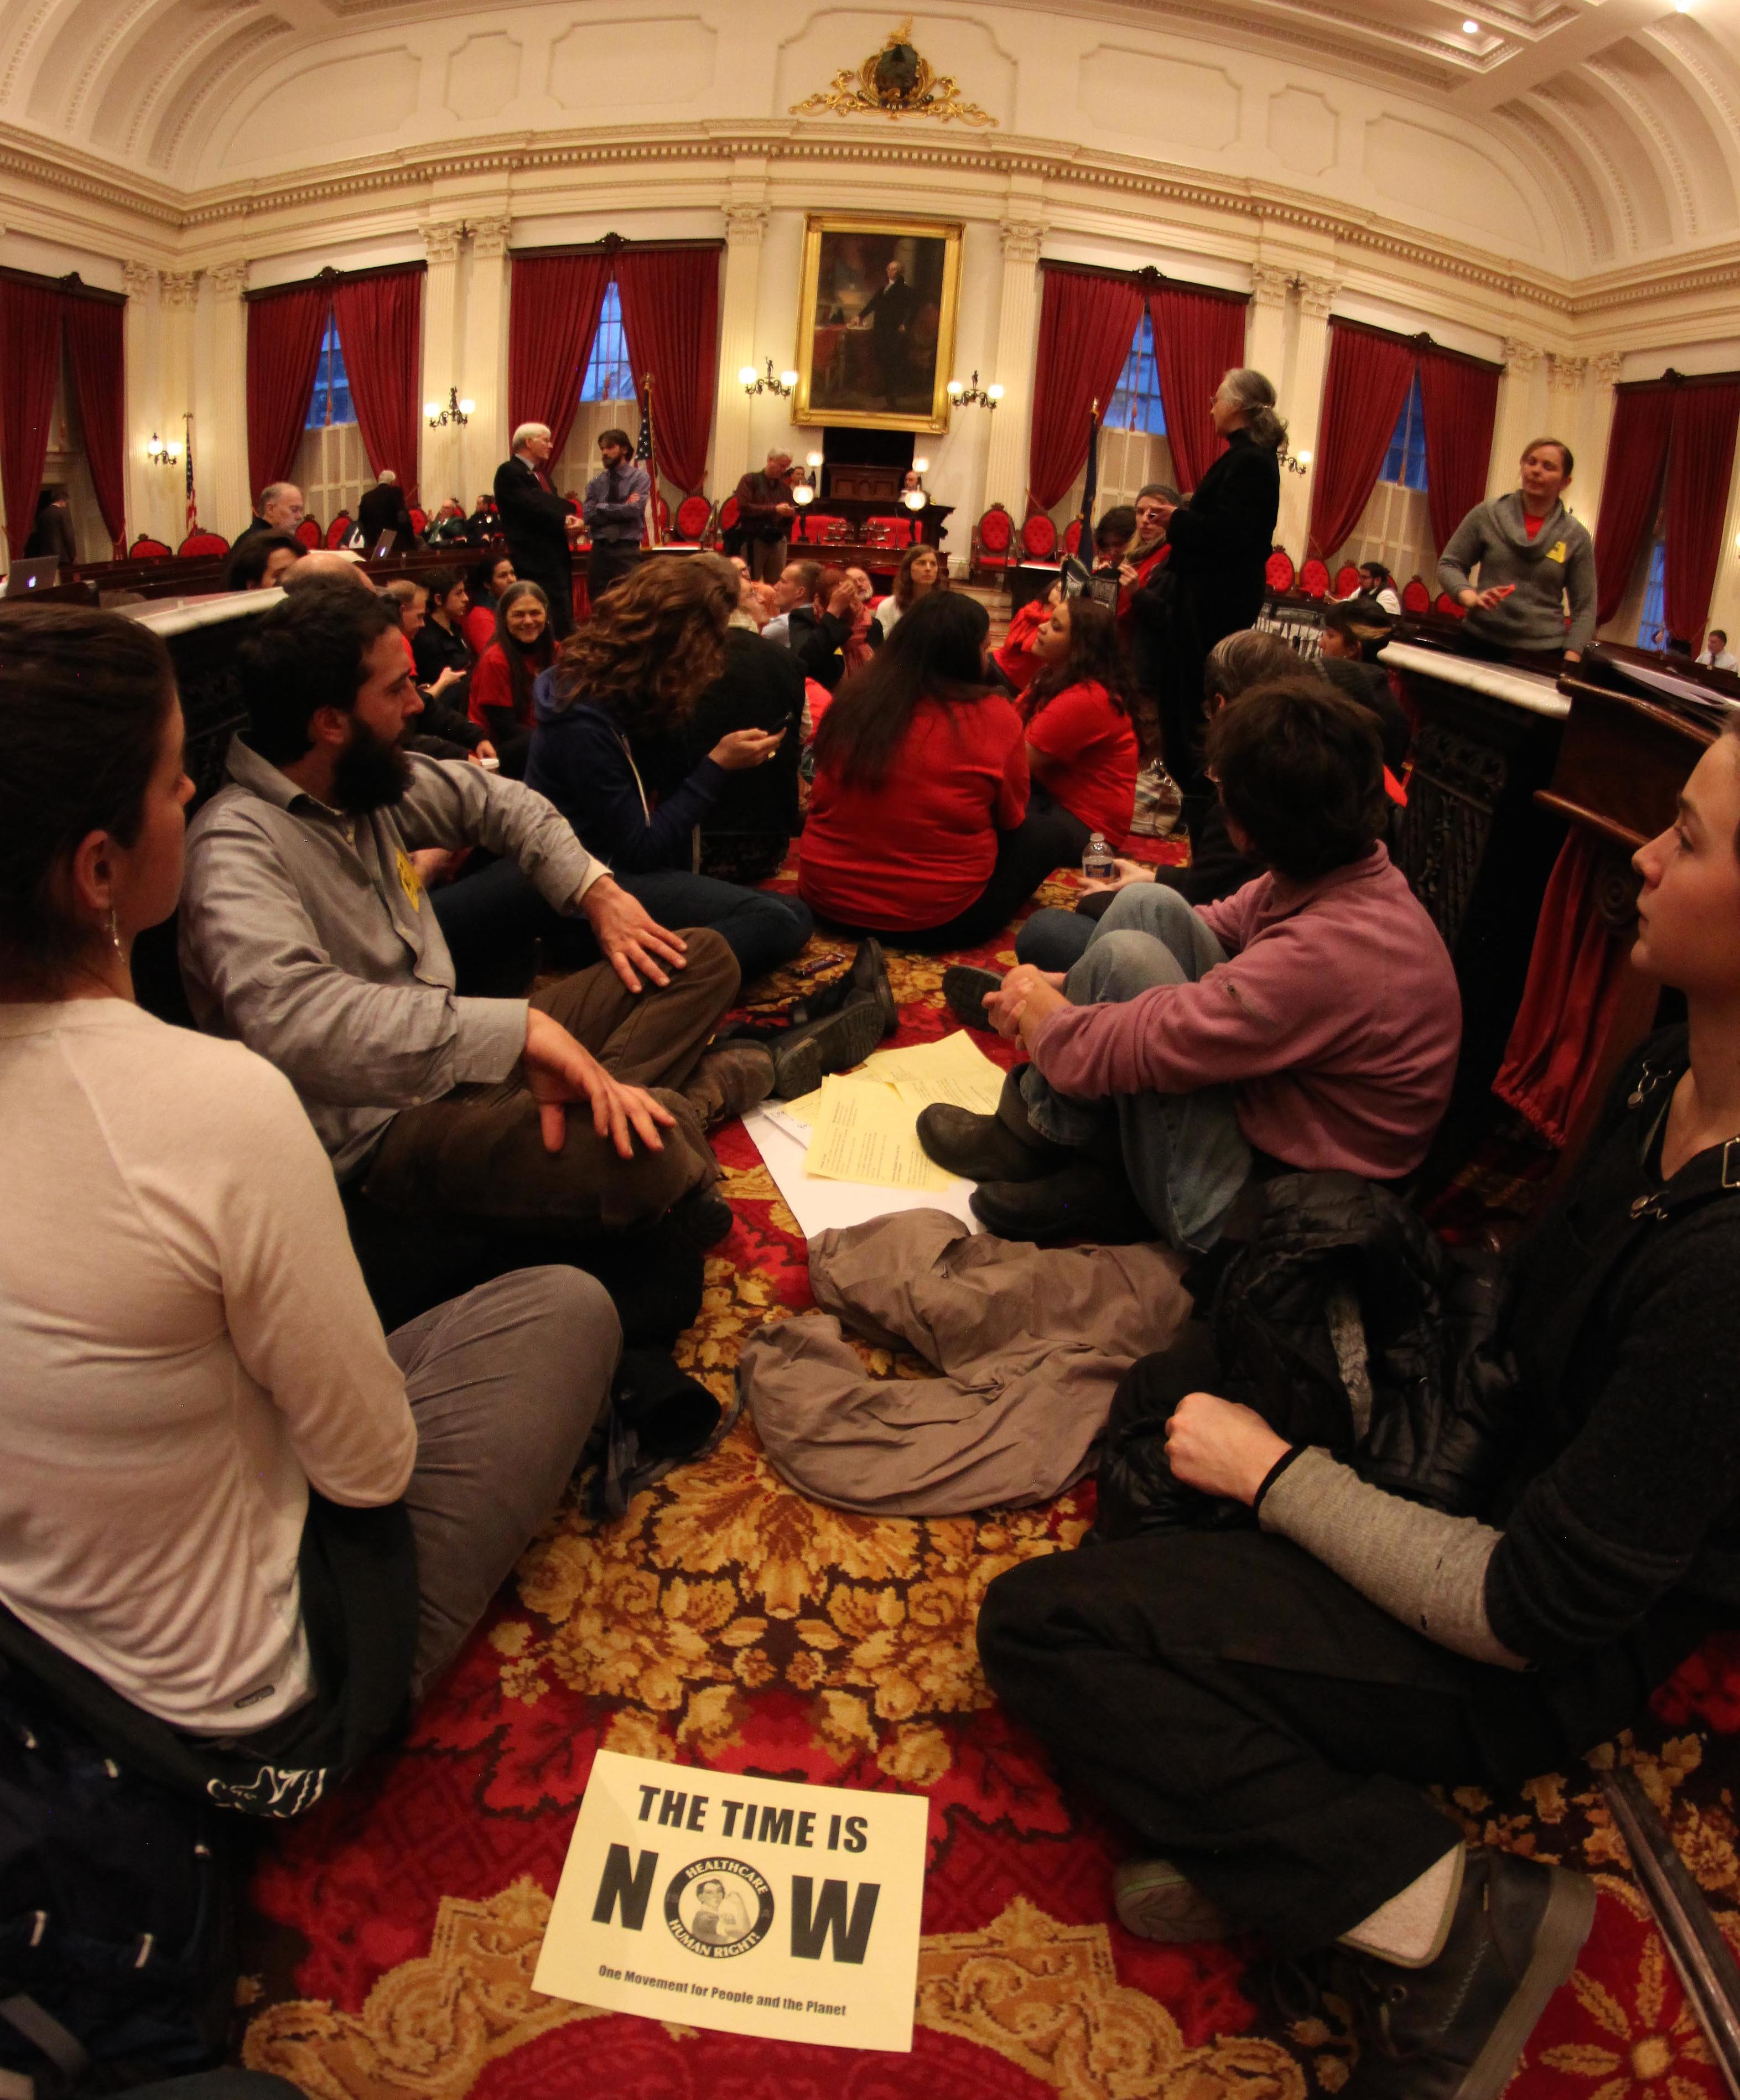 Photo of sit-in at statehouse